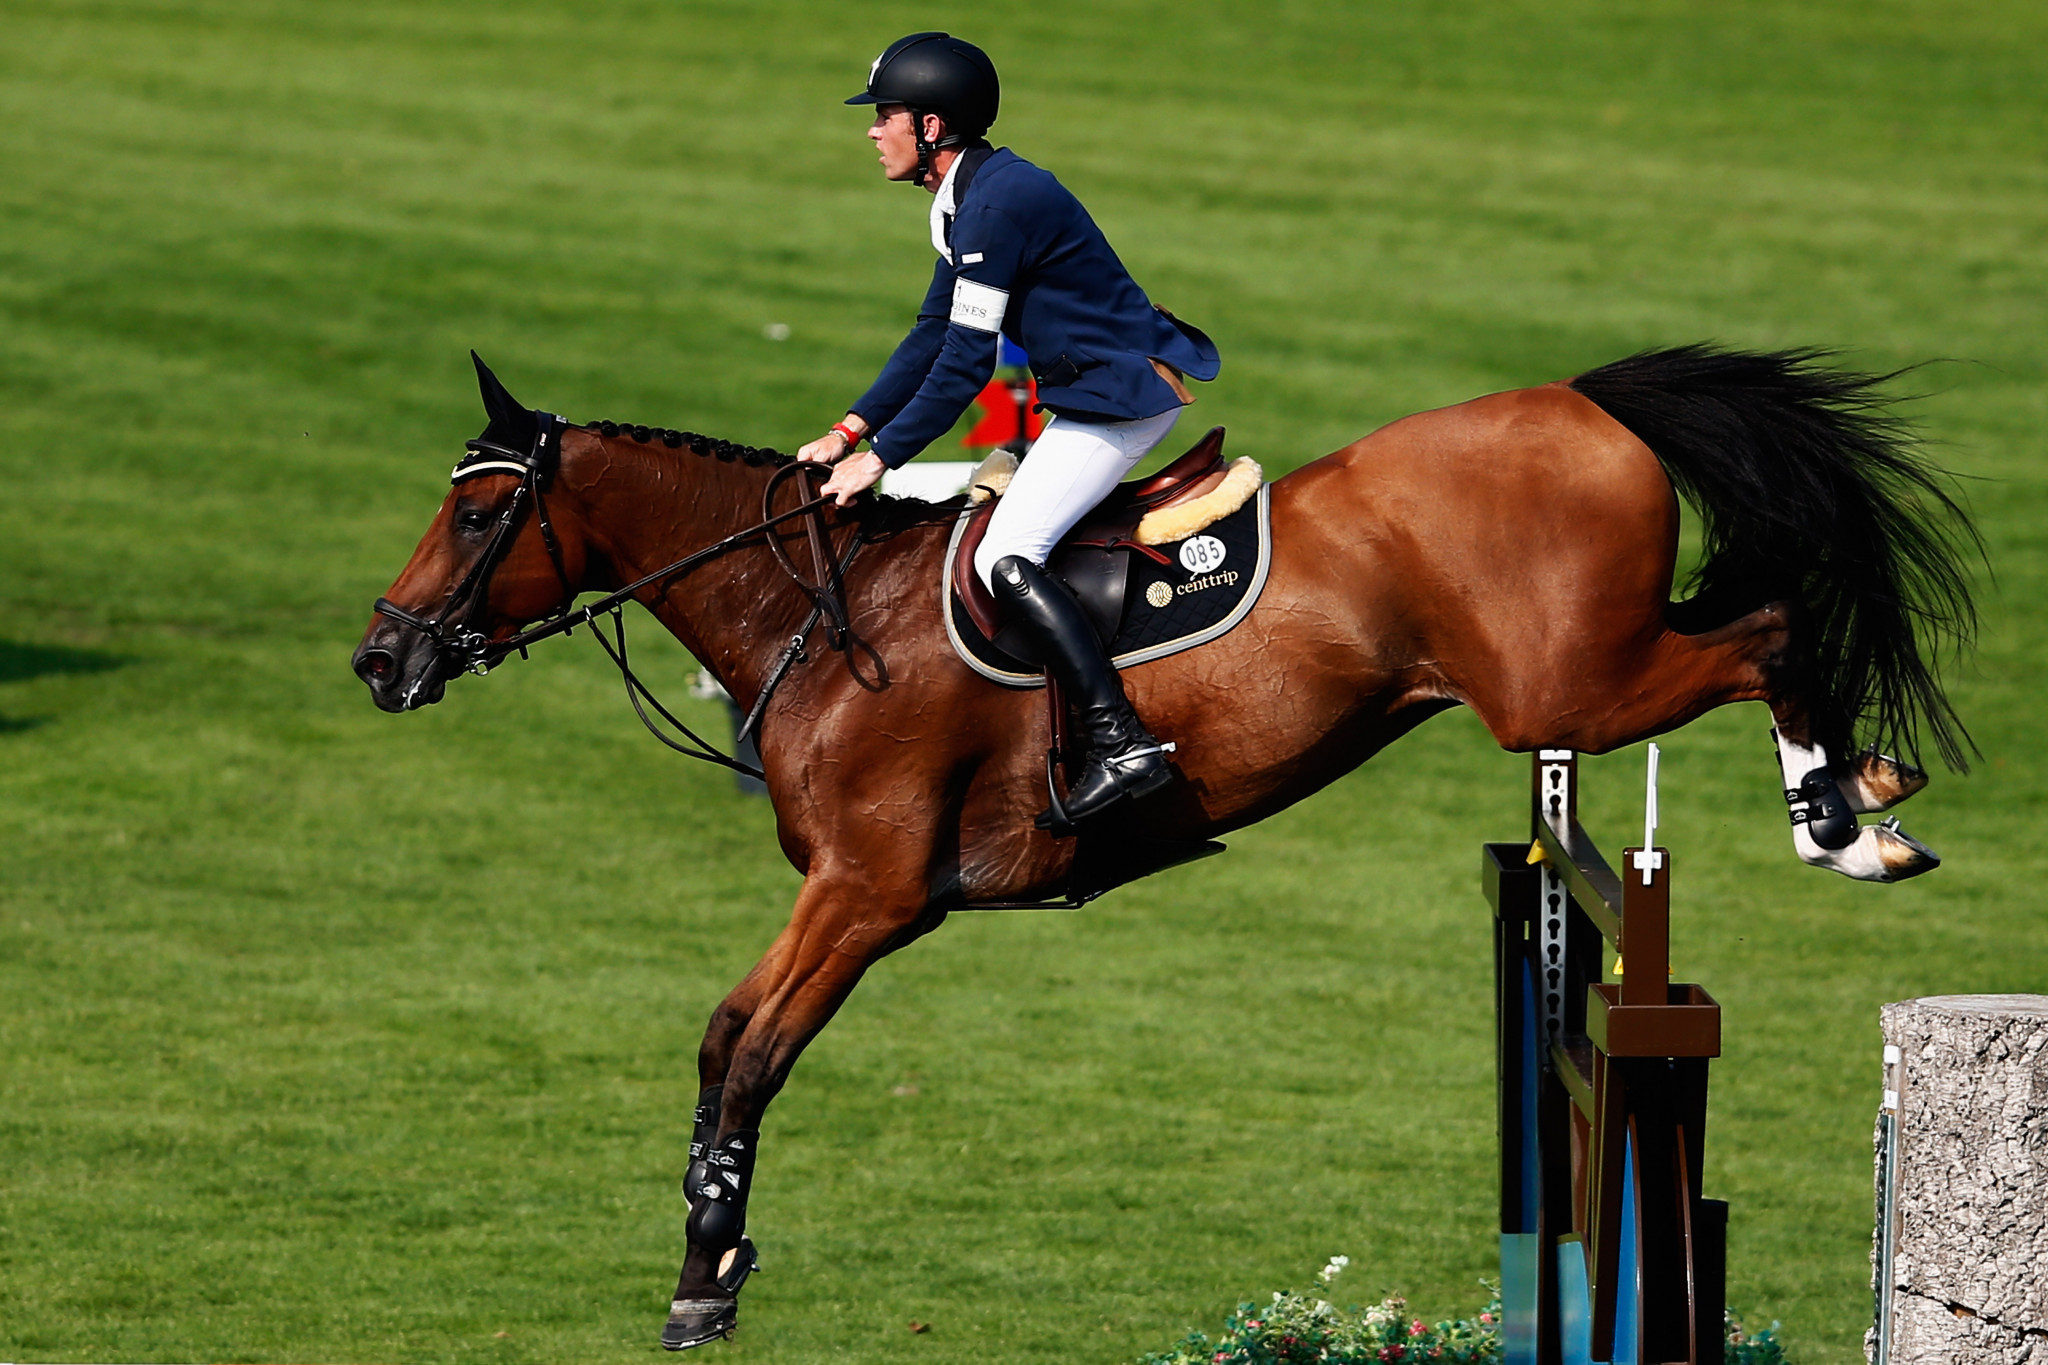 Scott Brash is hoping to add another win in Miami Beach ©Getty Images